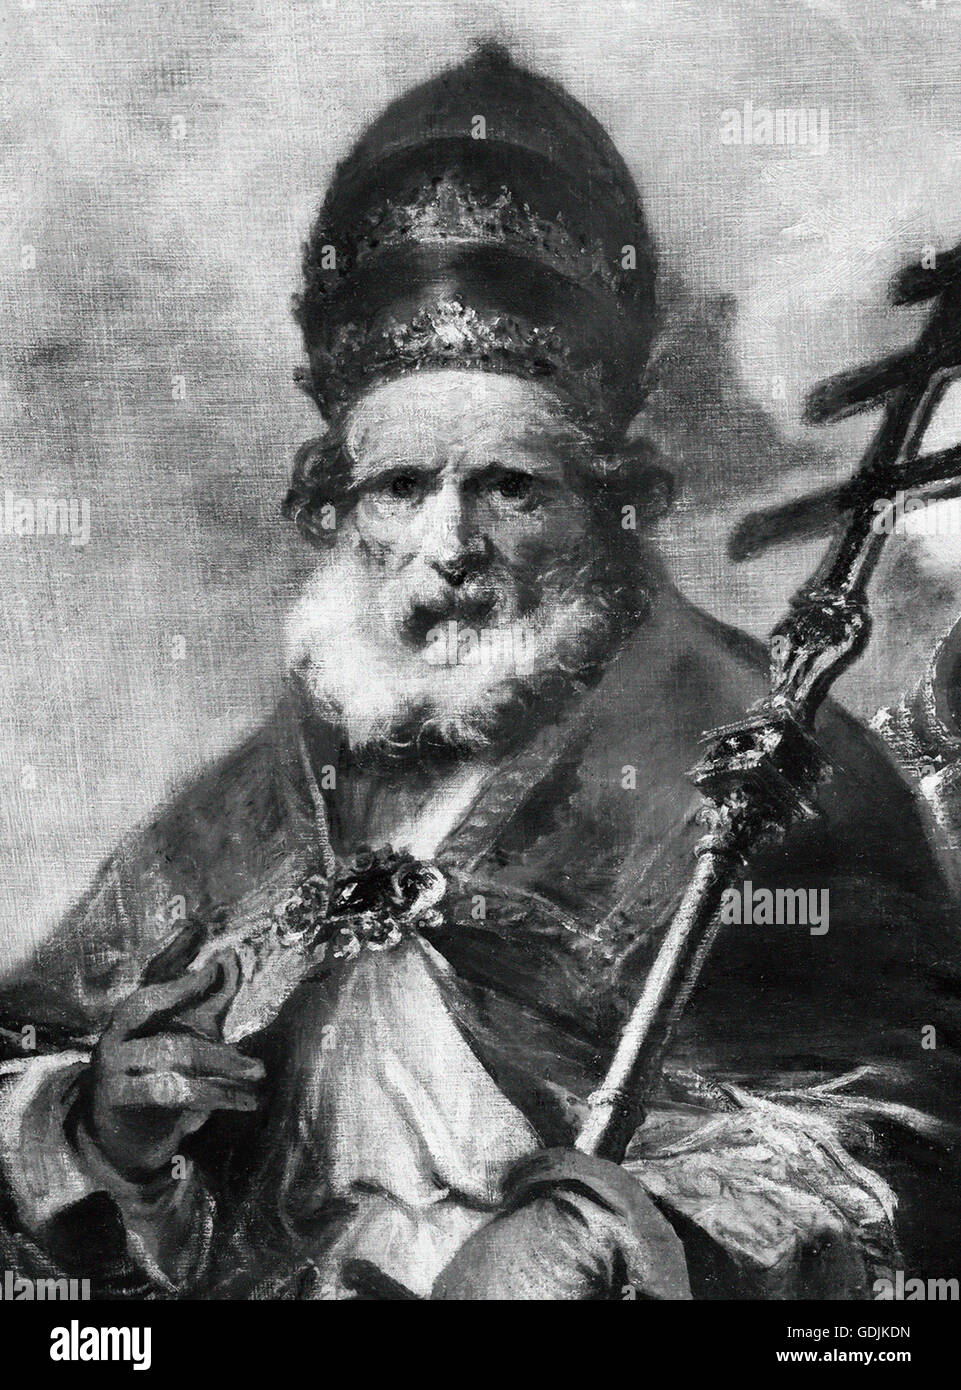 Pope Leo I (c. 400-461), also known as Saint Leo the Great, was pope from 440 to his death in 461. Painting by Francisco - Stock Image